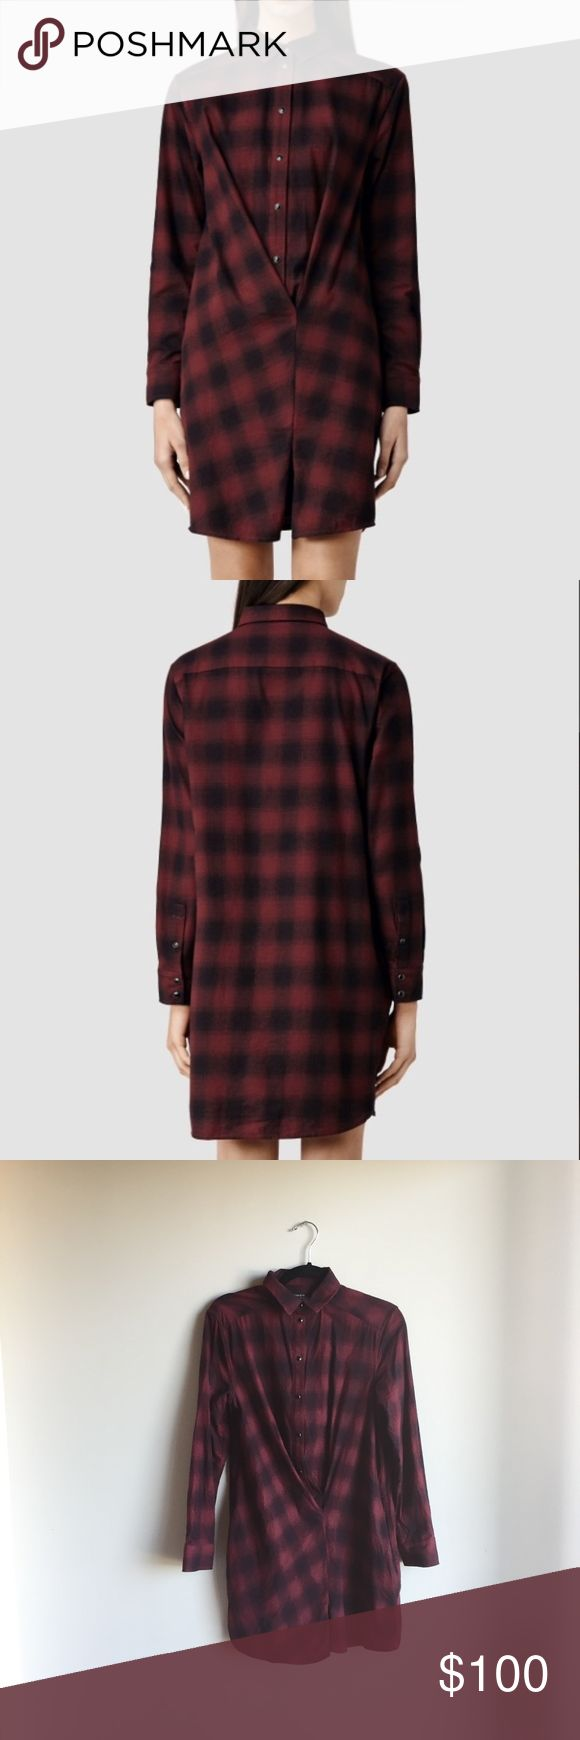 ALL SAINTS // kayla shirt dress I LOVE this flannel shirt dress. It's so cute with stockings and tall riding boots. Totally effortless and cool. Gently worn. Excellent condition.  *reasonable offers *no trades *no returns - please ask all questions before buying! All Saints Dresses